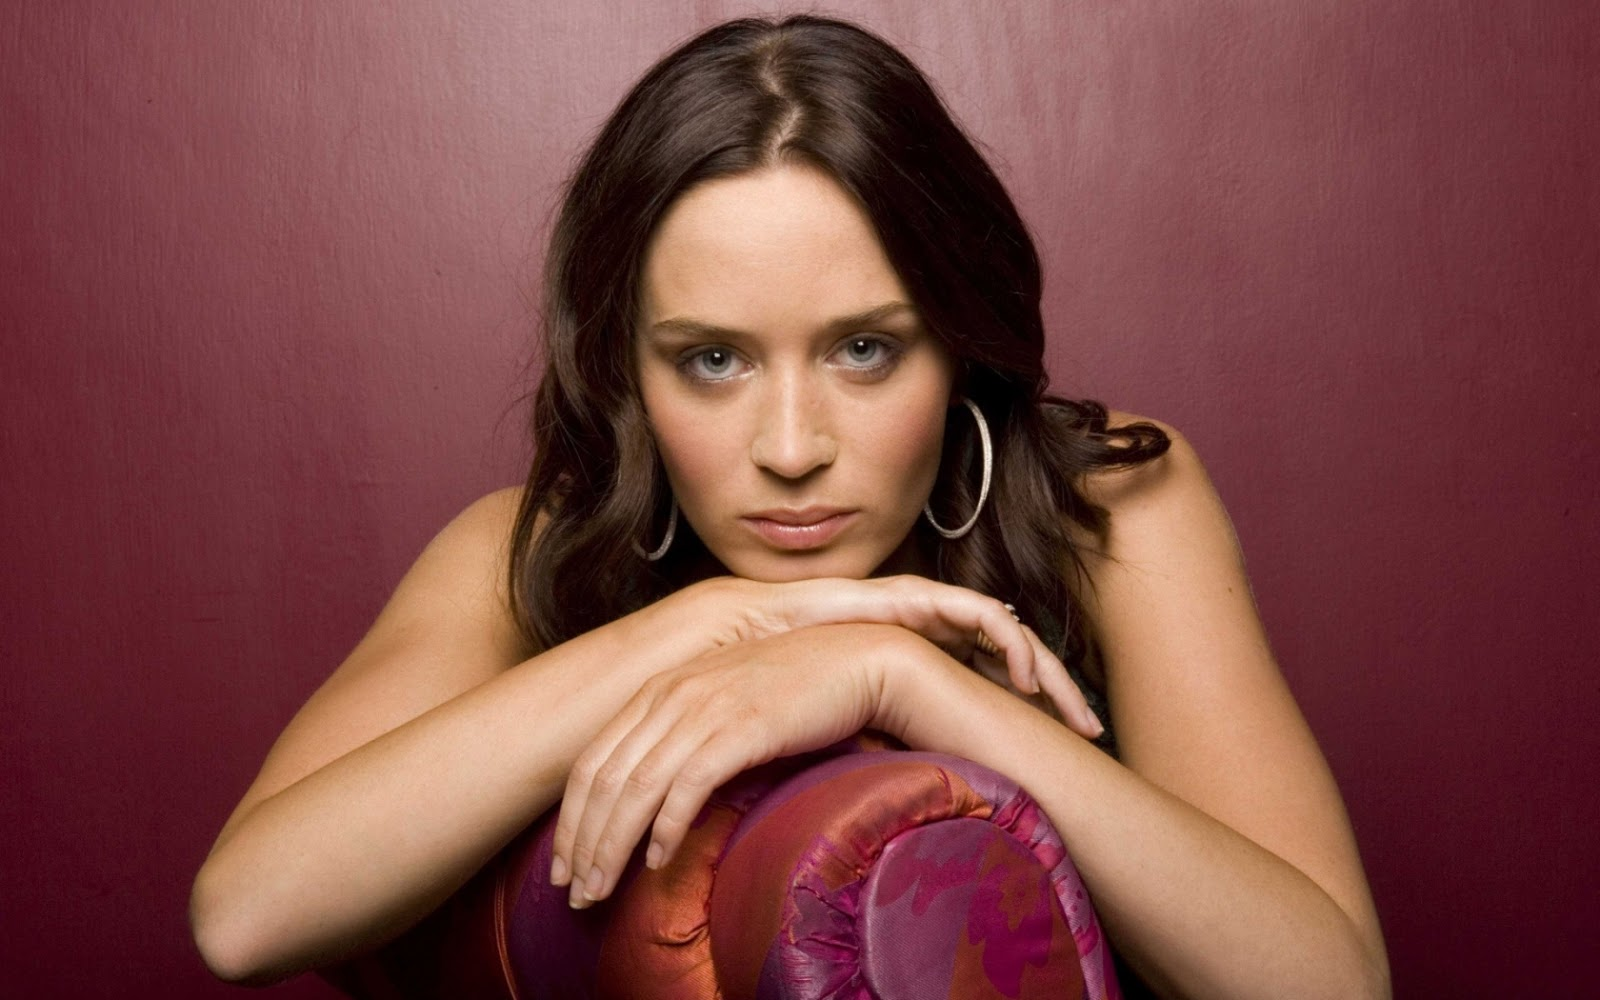 Emily Blunt New Hot HD Wallpapers 2012 ~ HOT CELEBRITY: Emma Stone Emily Blunt